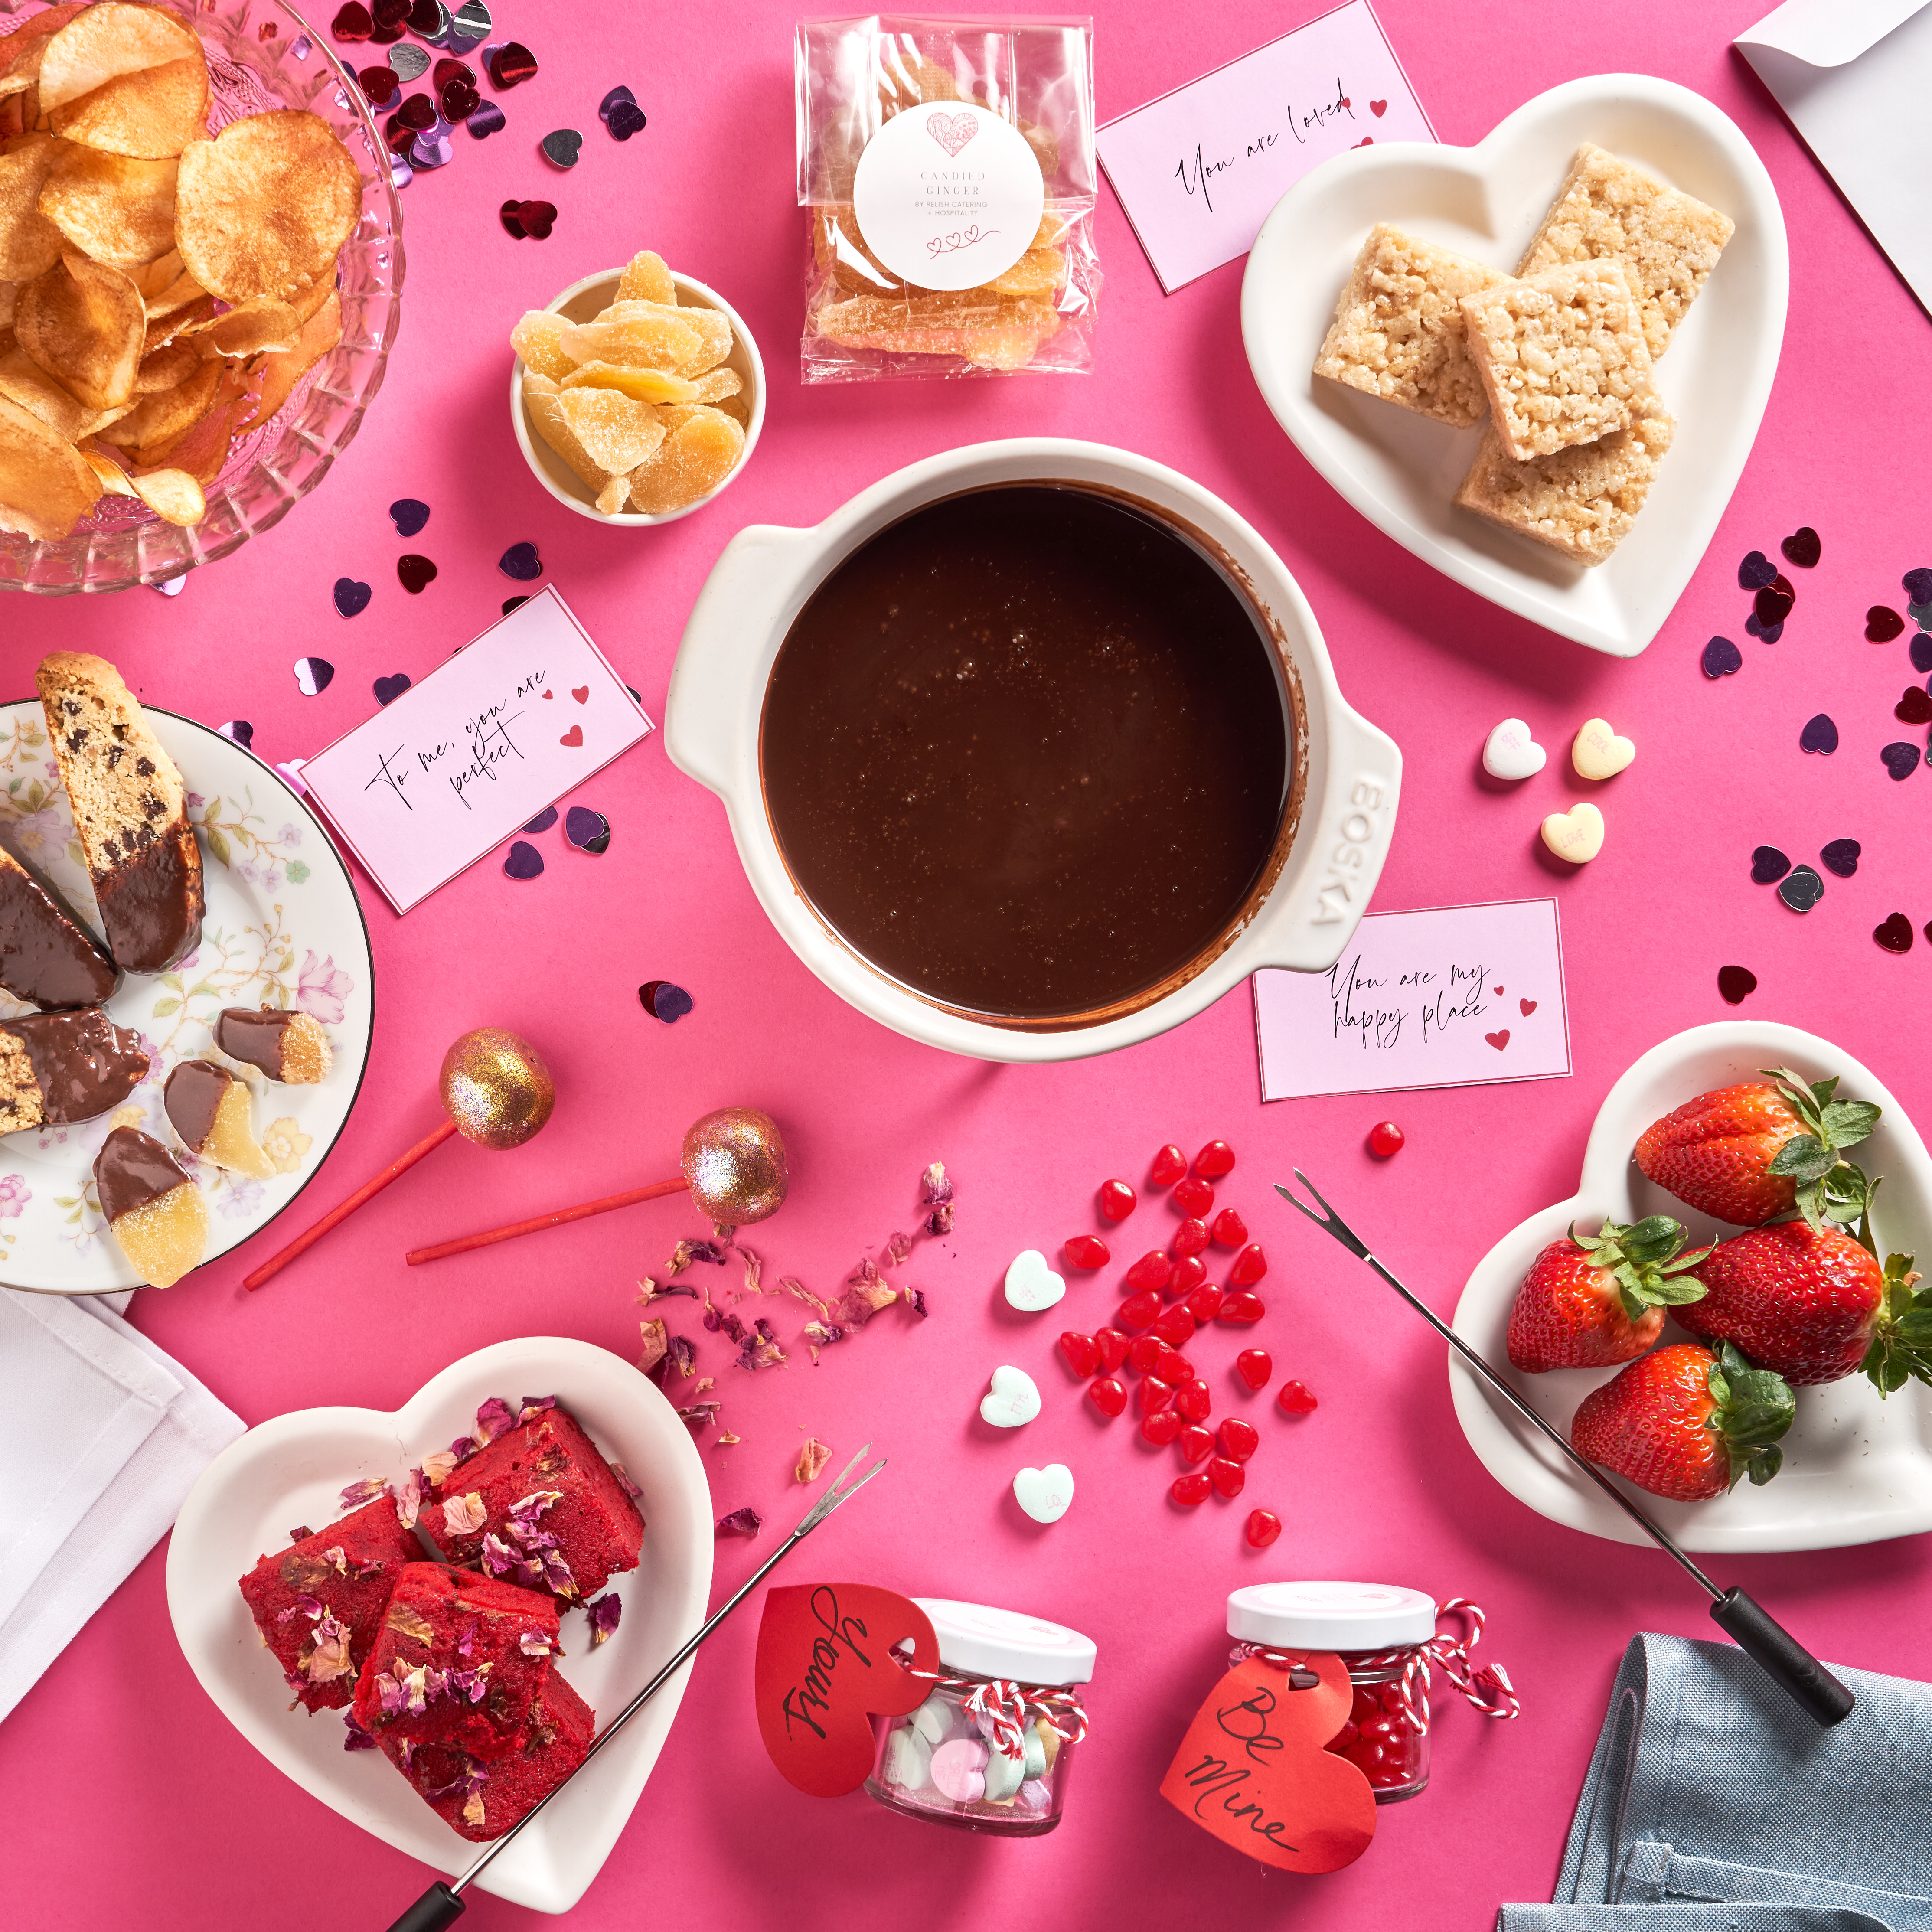 Relish Catering's Chocolate Fondue Box has everything you need for an indulgent and fun fondue experience | WhereTraveler